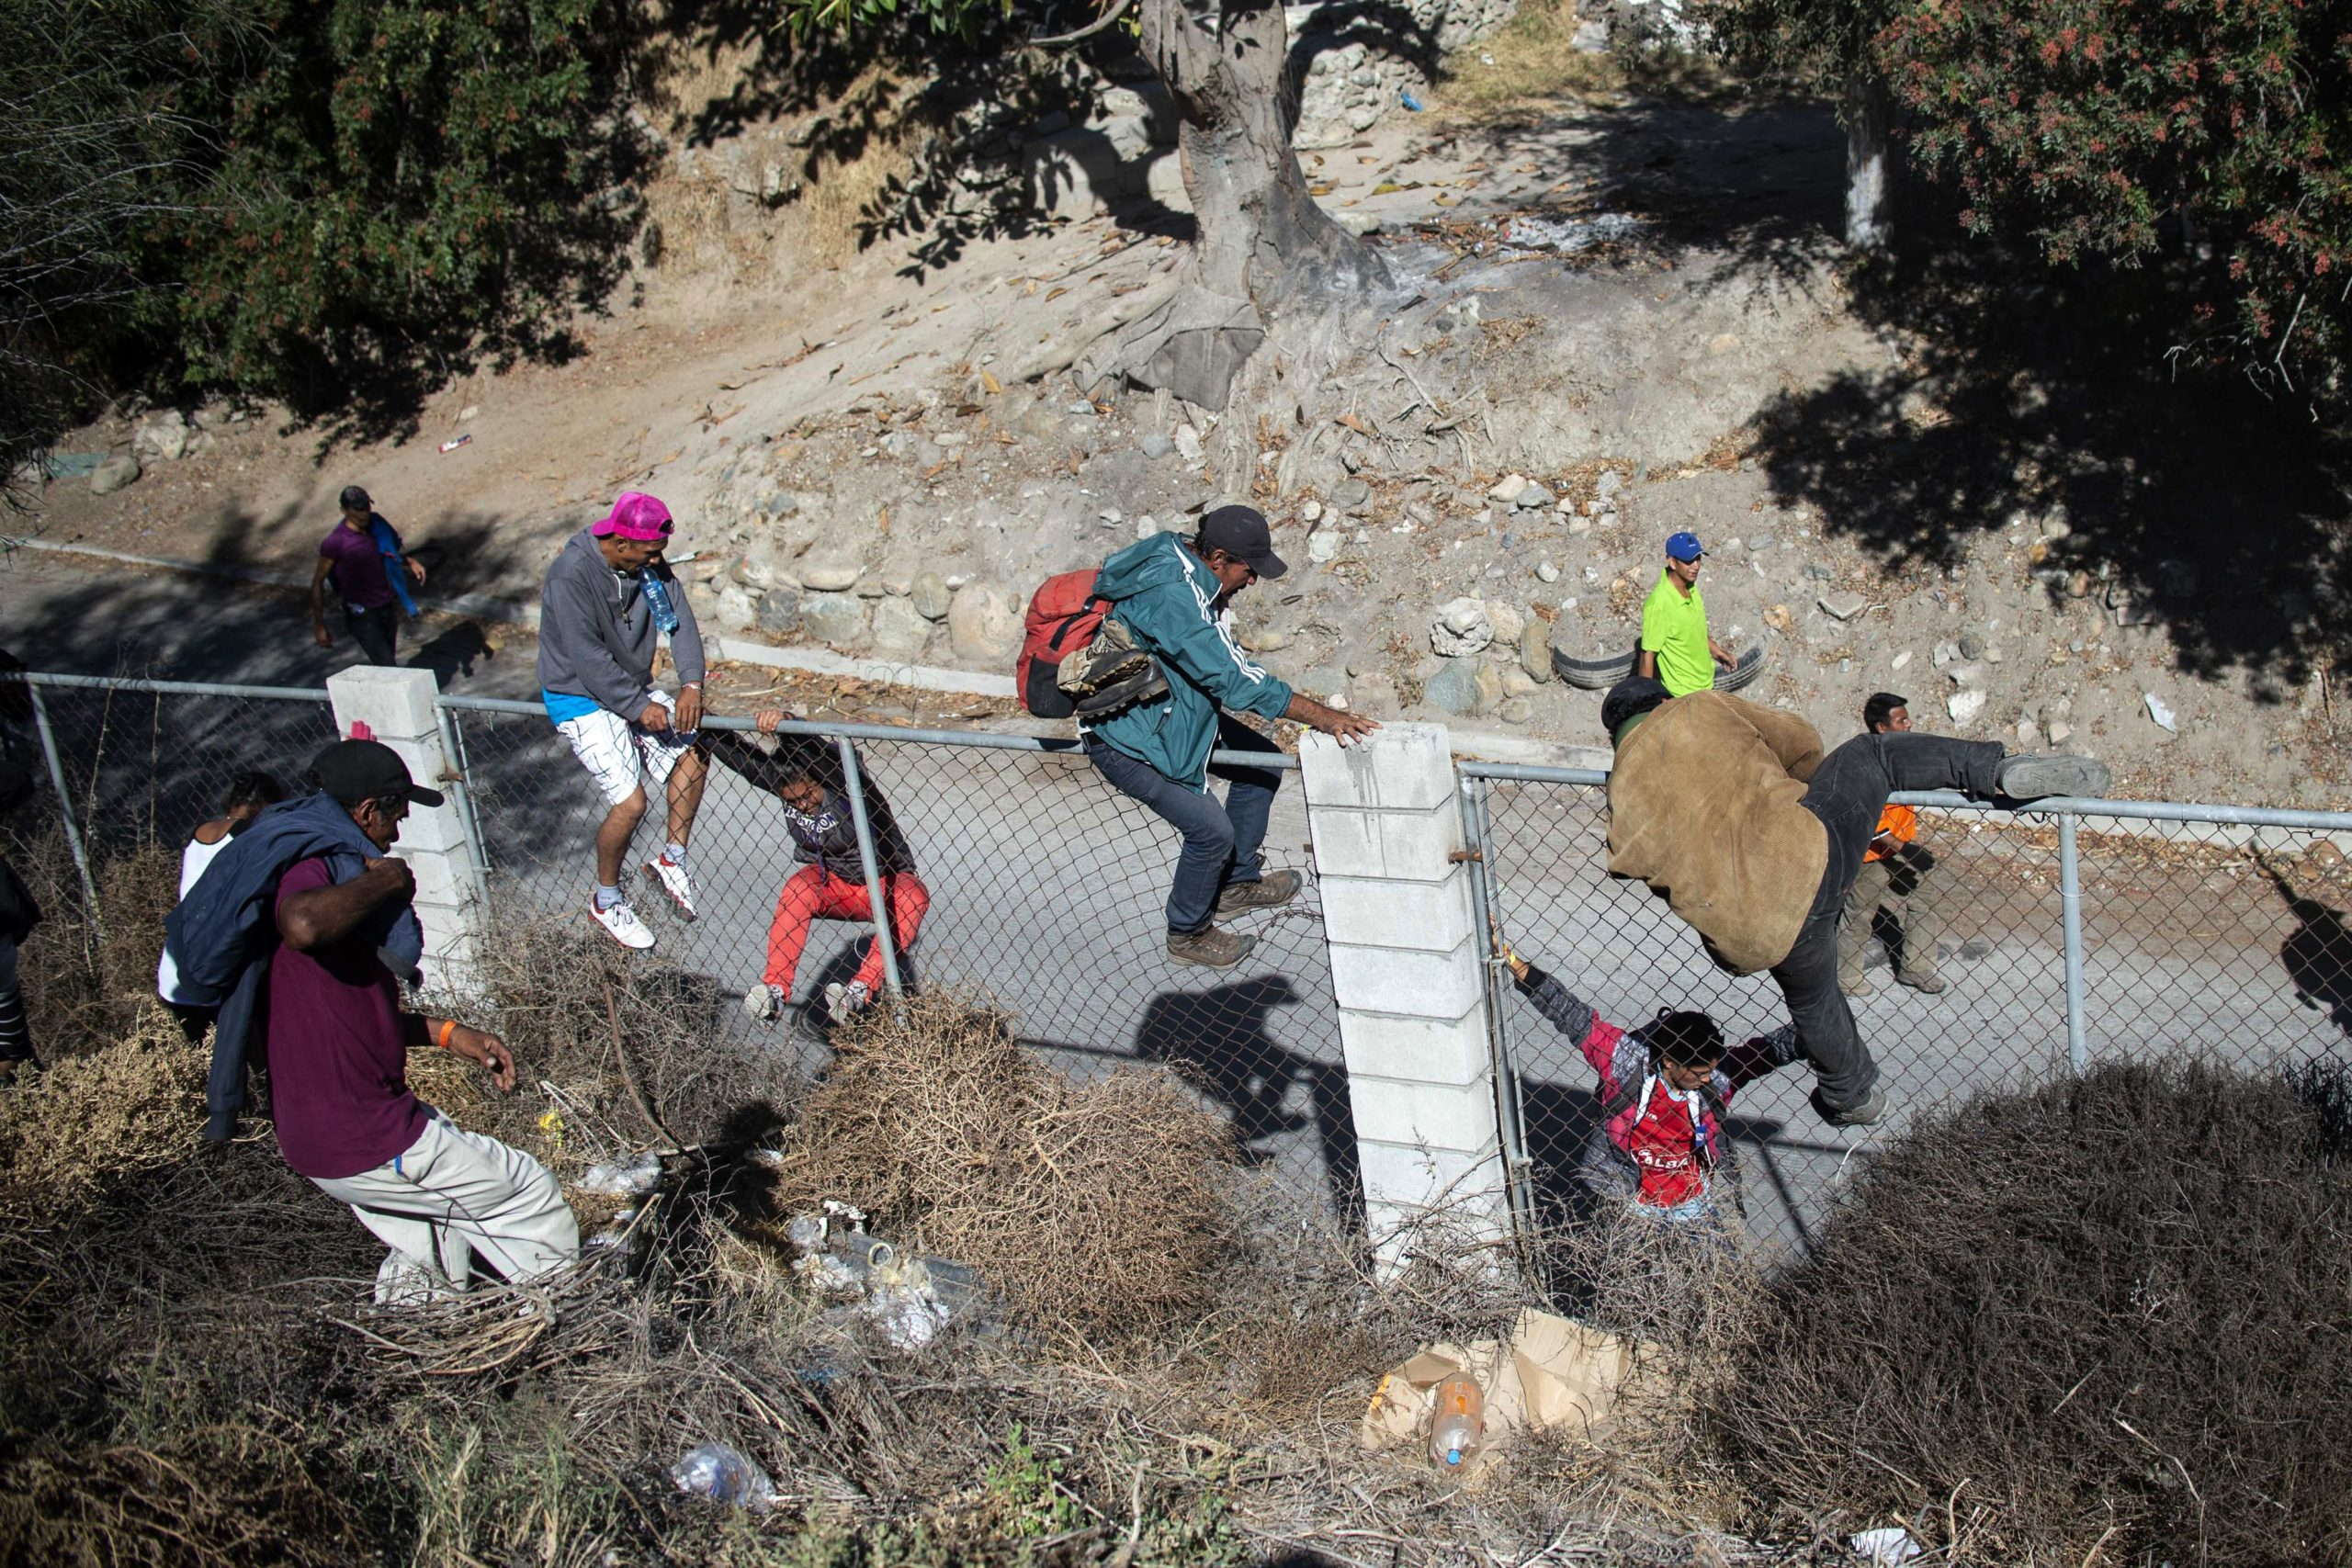 A group of Central American migrants -mostly from Honduras- cross over a fence as they try to reach the border fence between Mexico and the United States, in Tijuana, Baja California State, Mexico, near US-Mexico border on November 25, 2018. (Photo credit should read PEDRO PARDO/AFP via Getty Images)